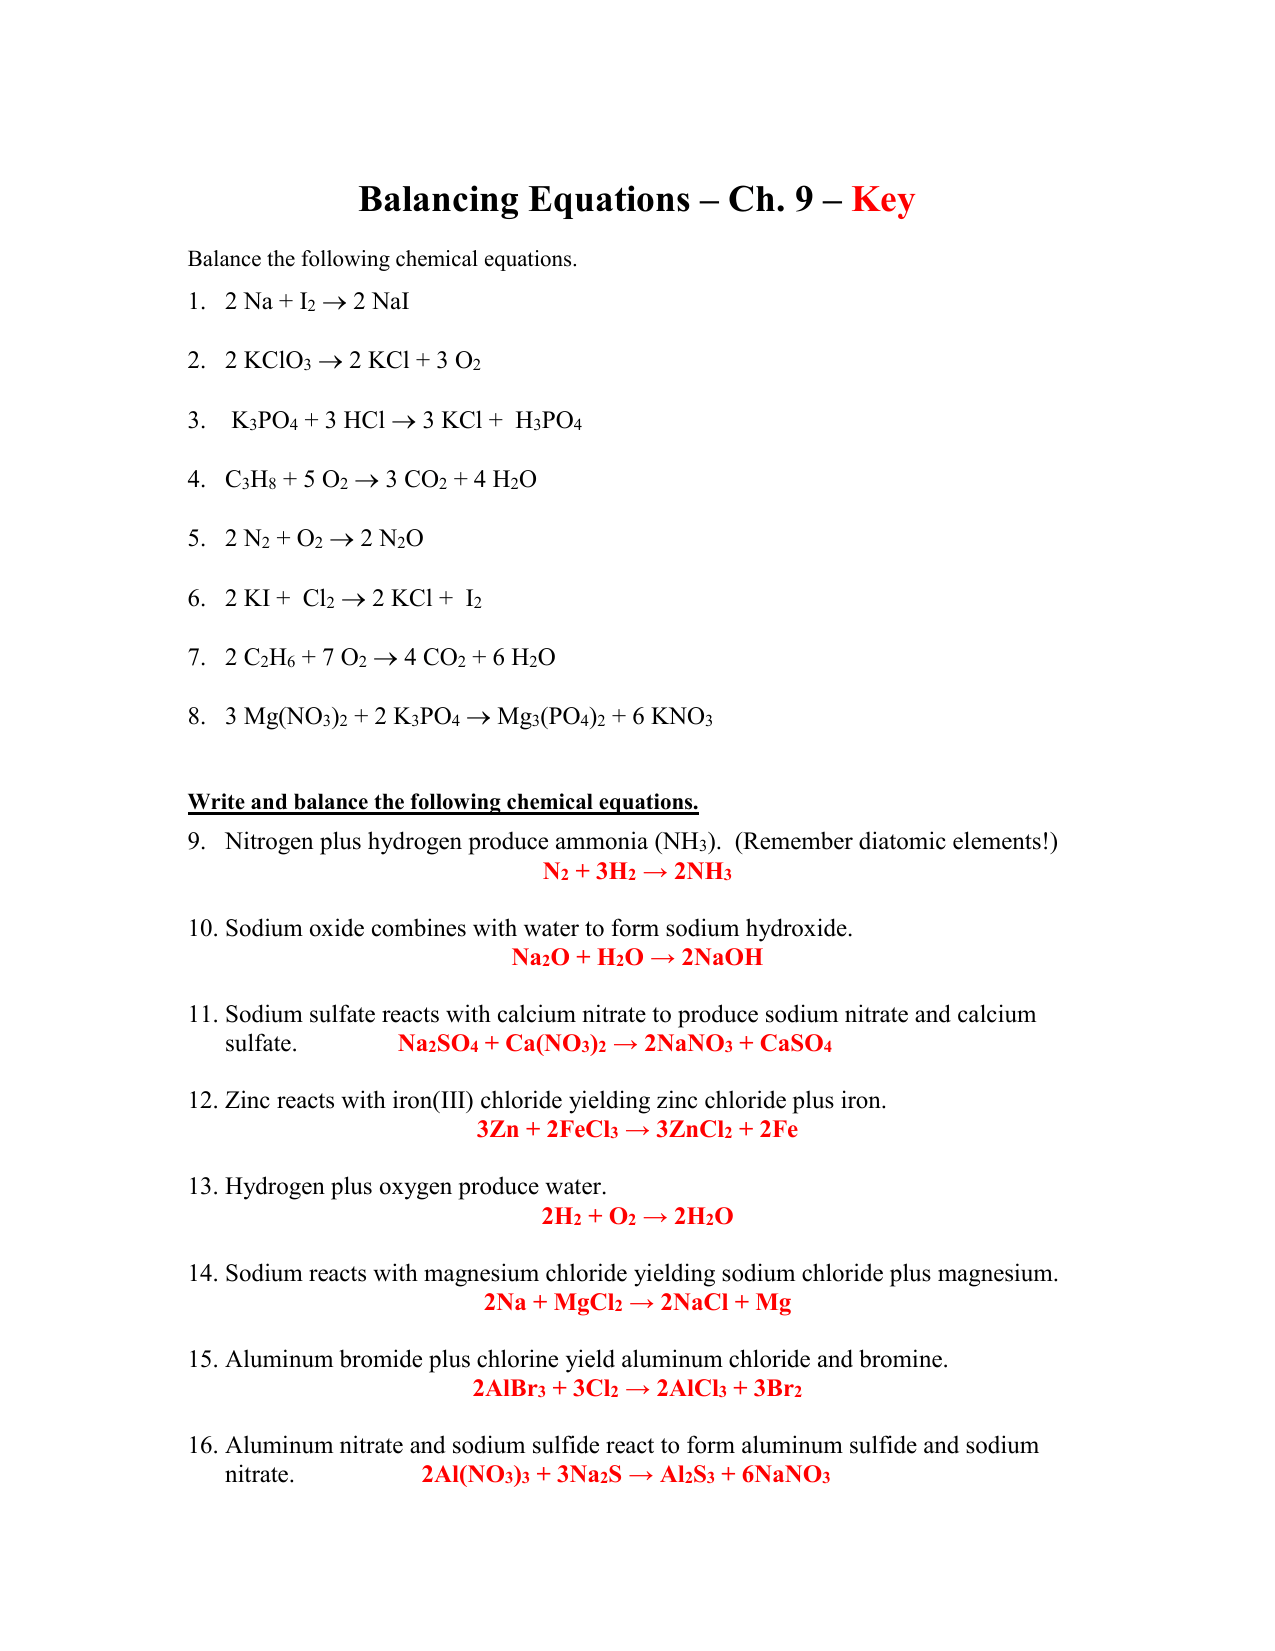 Balancing Equations Worksheet Kclo3